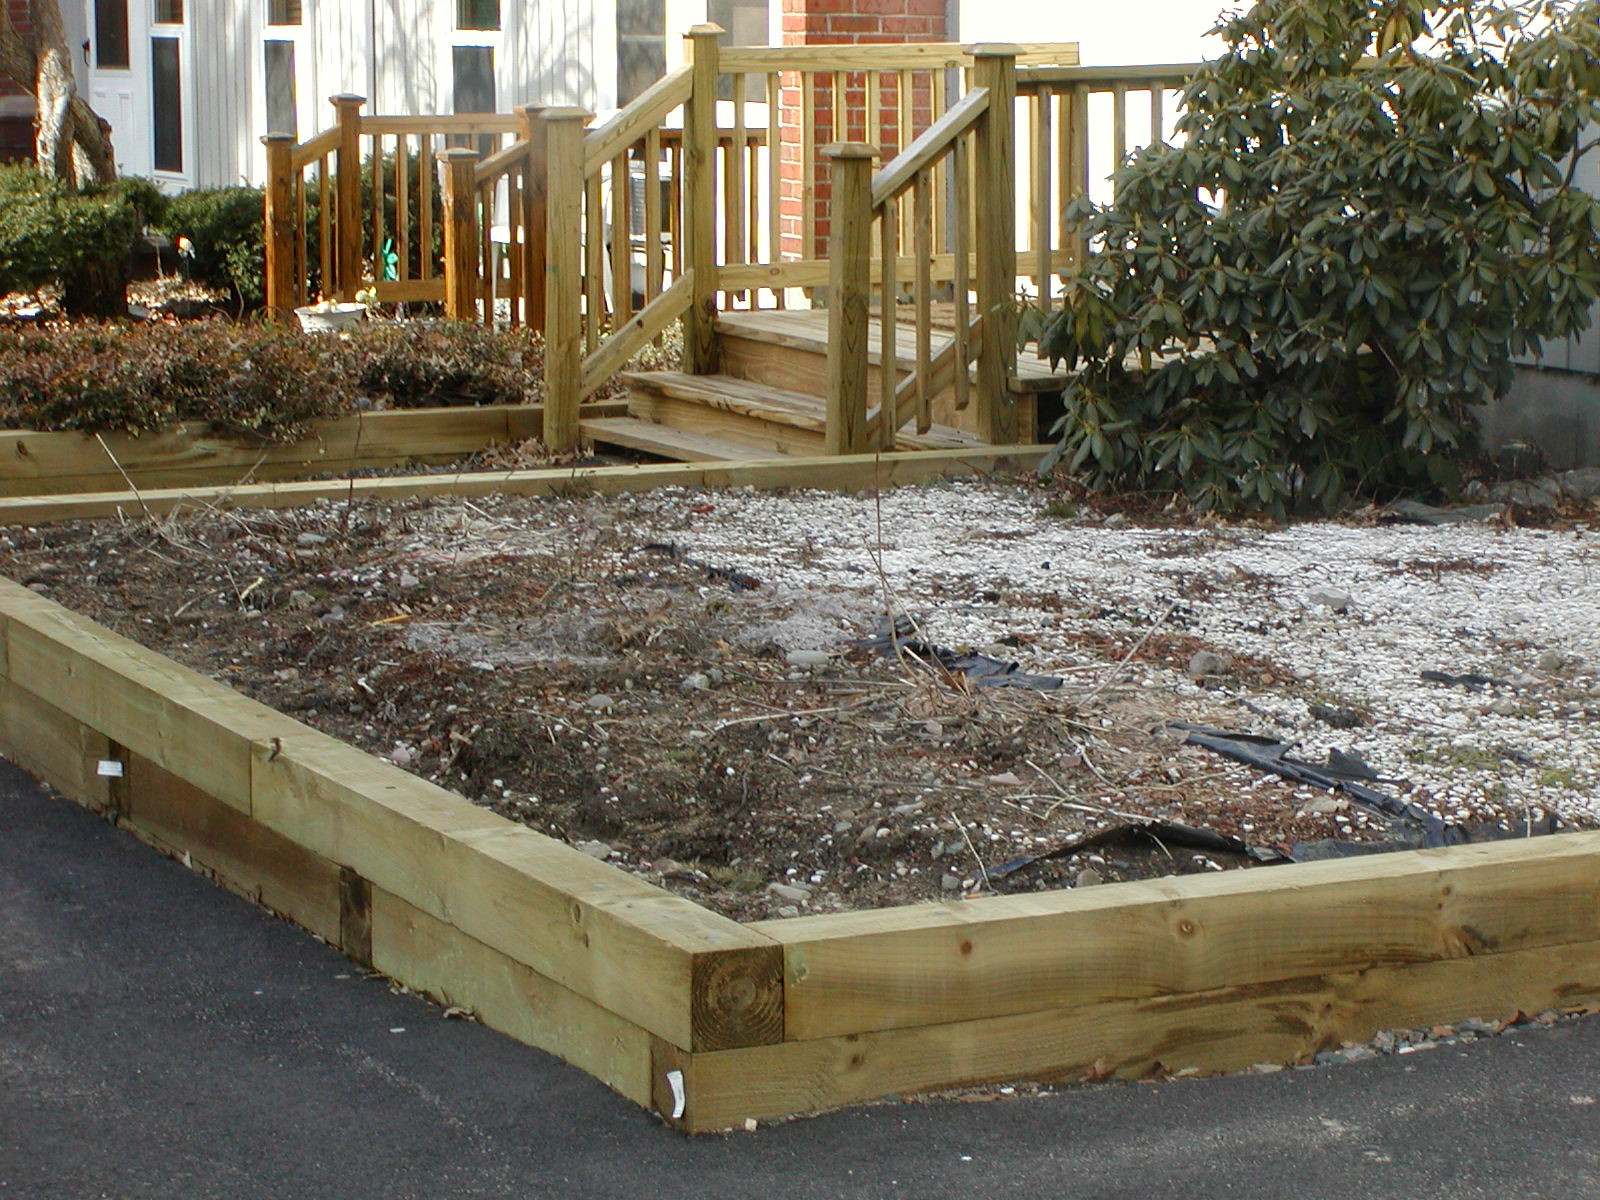 Best ideas about Menards Landscape Timbers . Save or Pin 6x6 Landscape Timbers Menards — The Bangups Decor Top 6 Now.